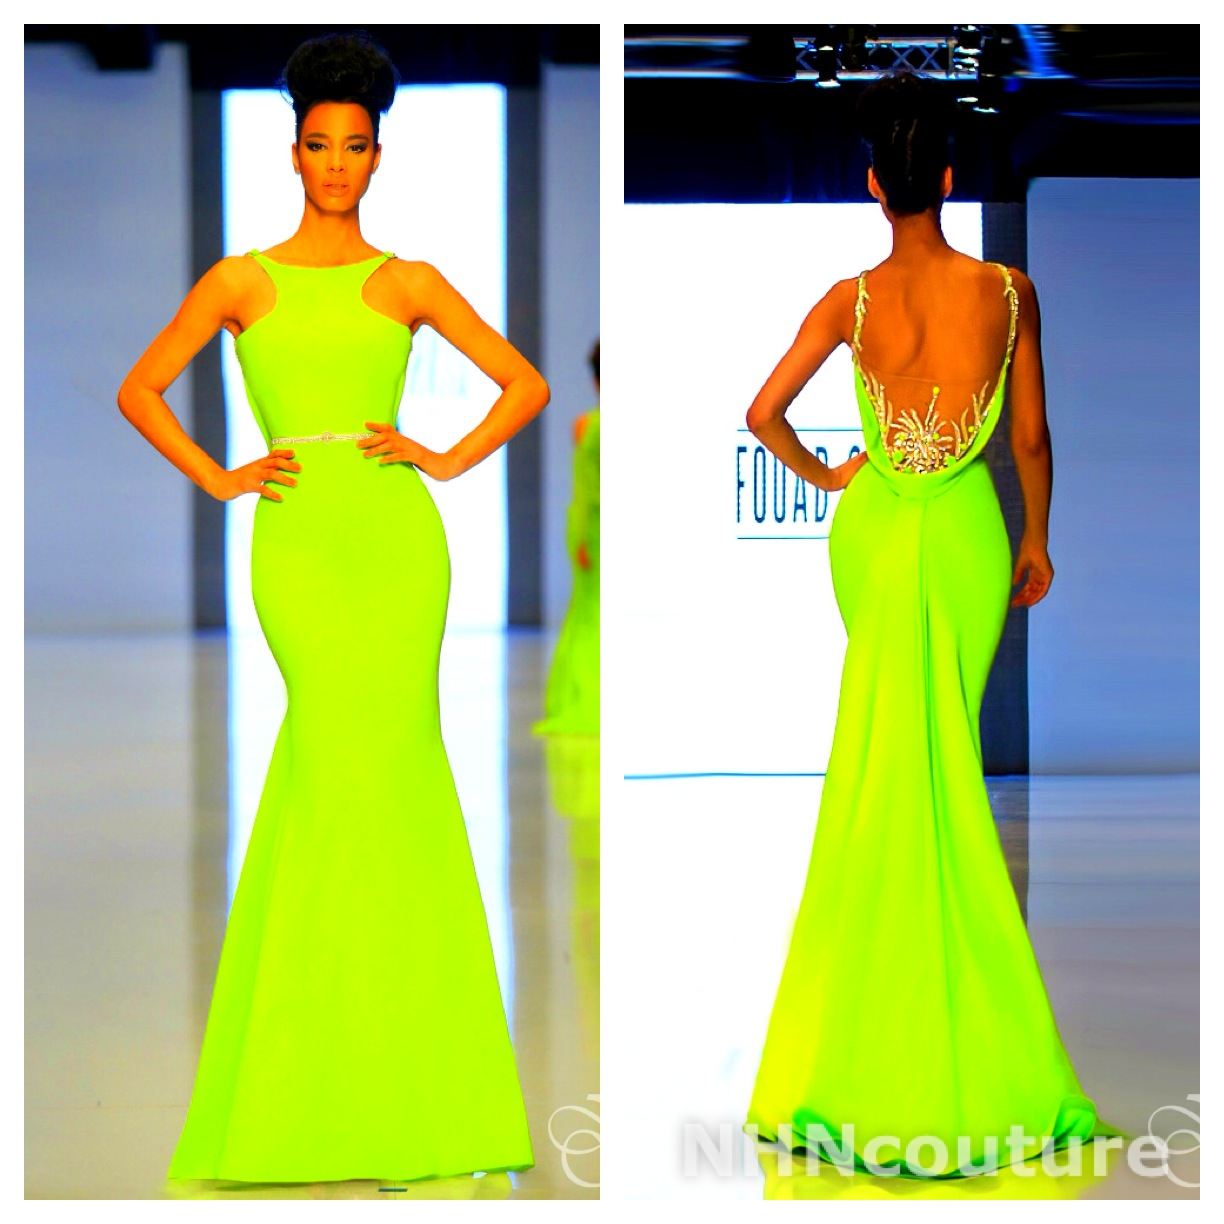 NHN Couture-Fouad Couture Nigeria 4